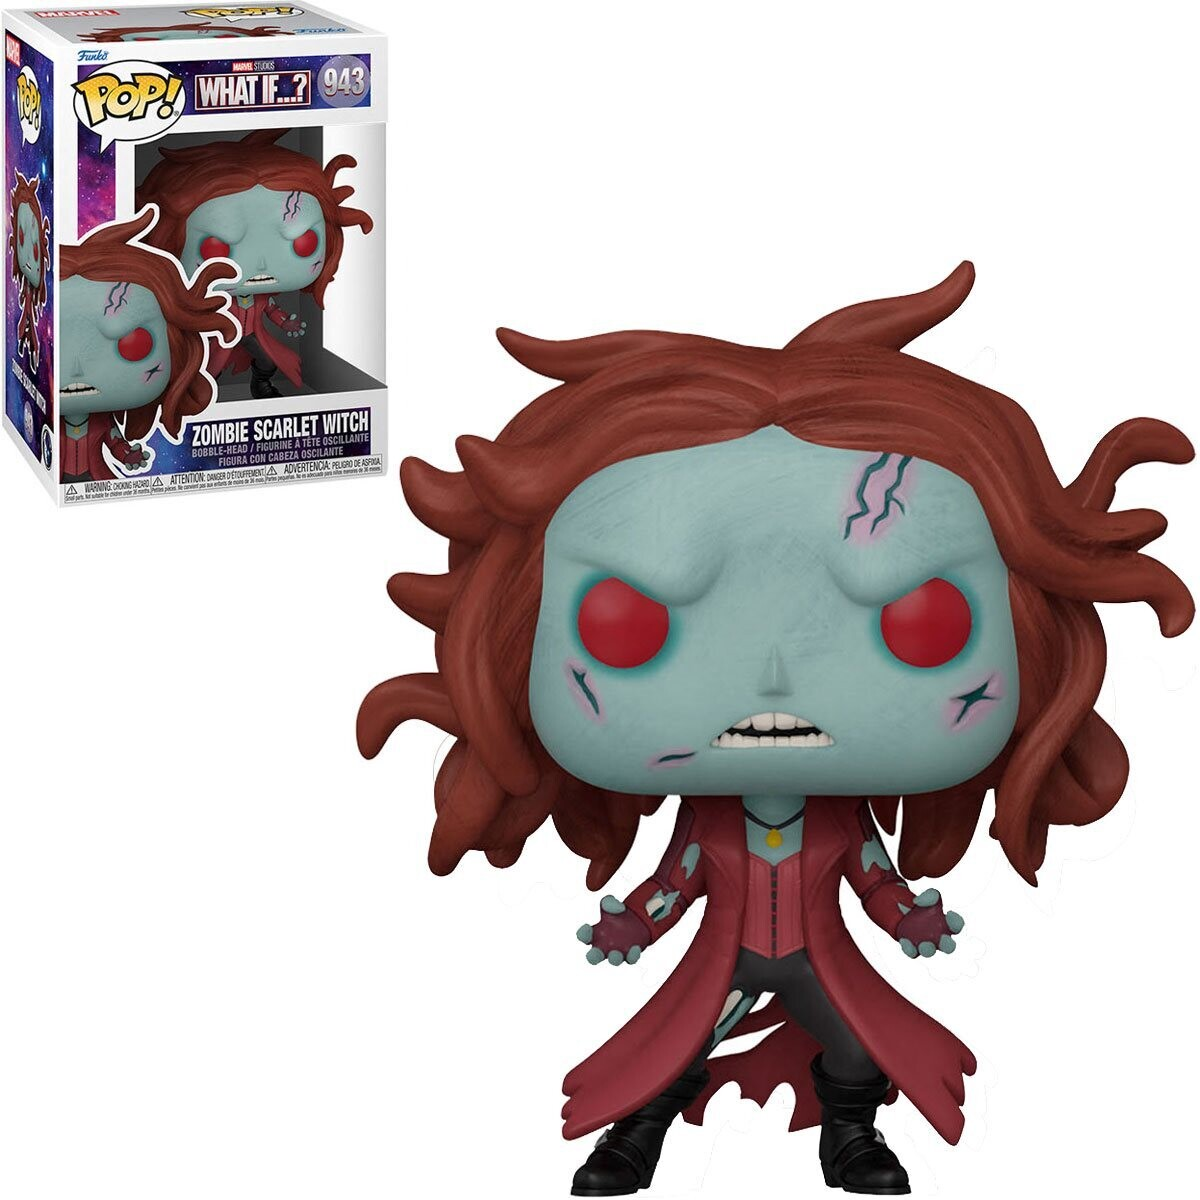 PRE-ORDER Funko What if Zombie Scarlet Witch Pop! Vinyl Figure